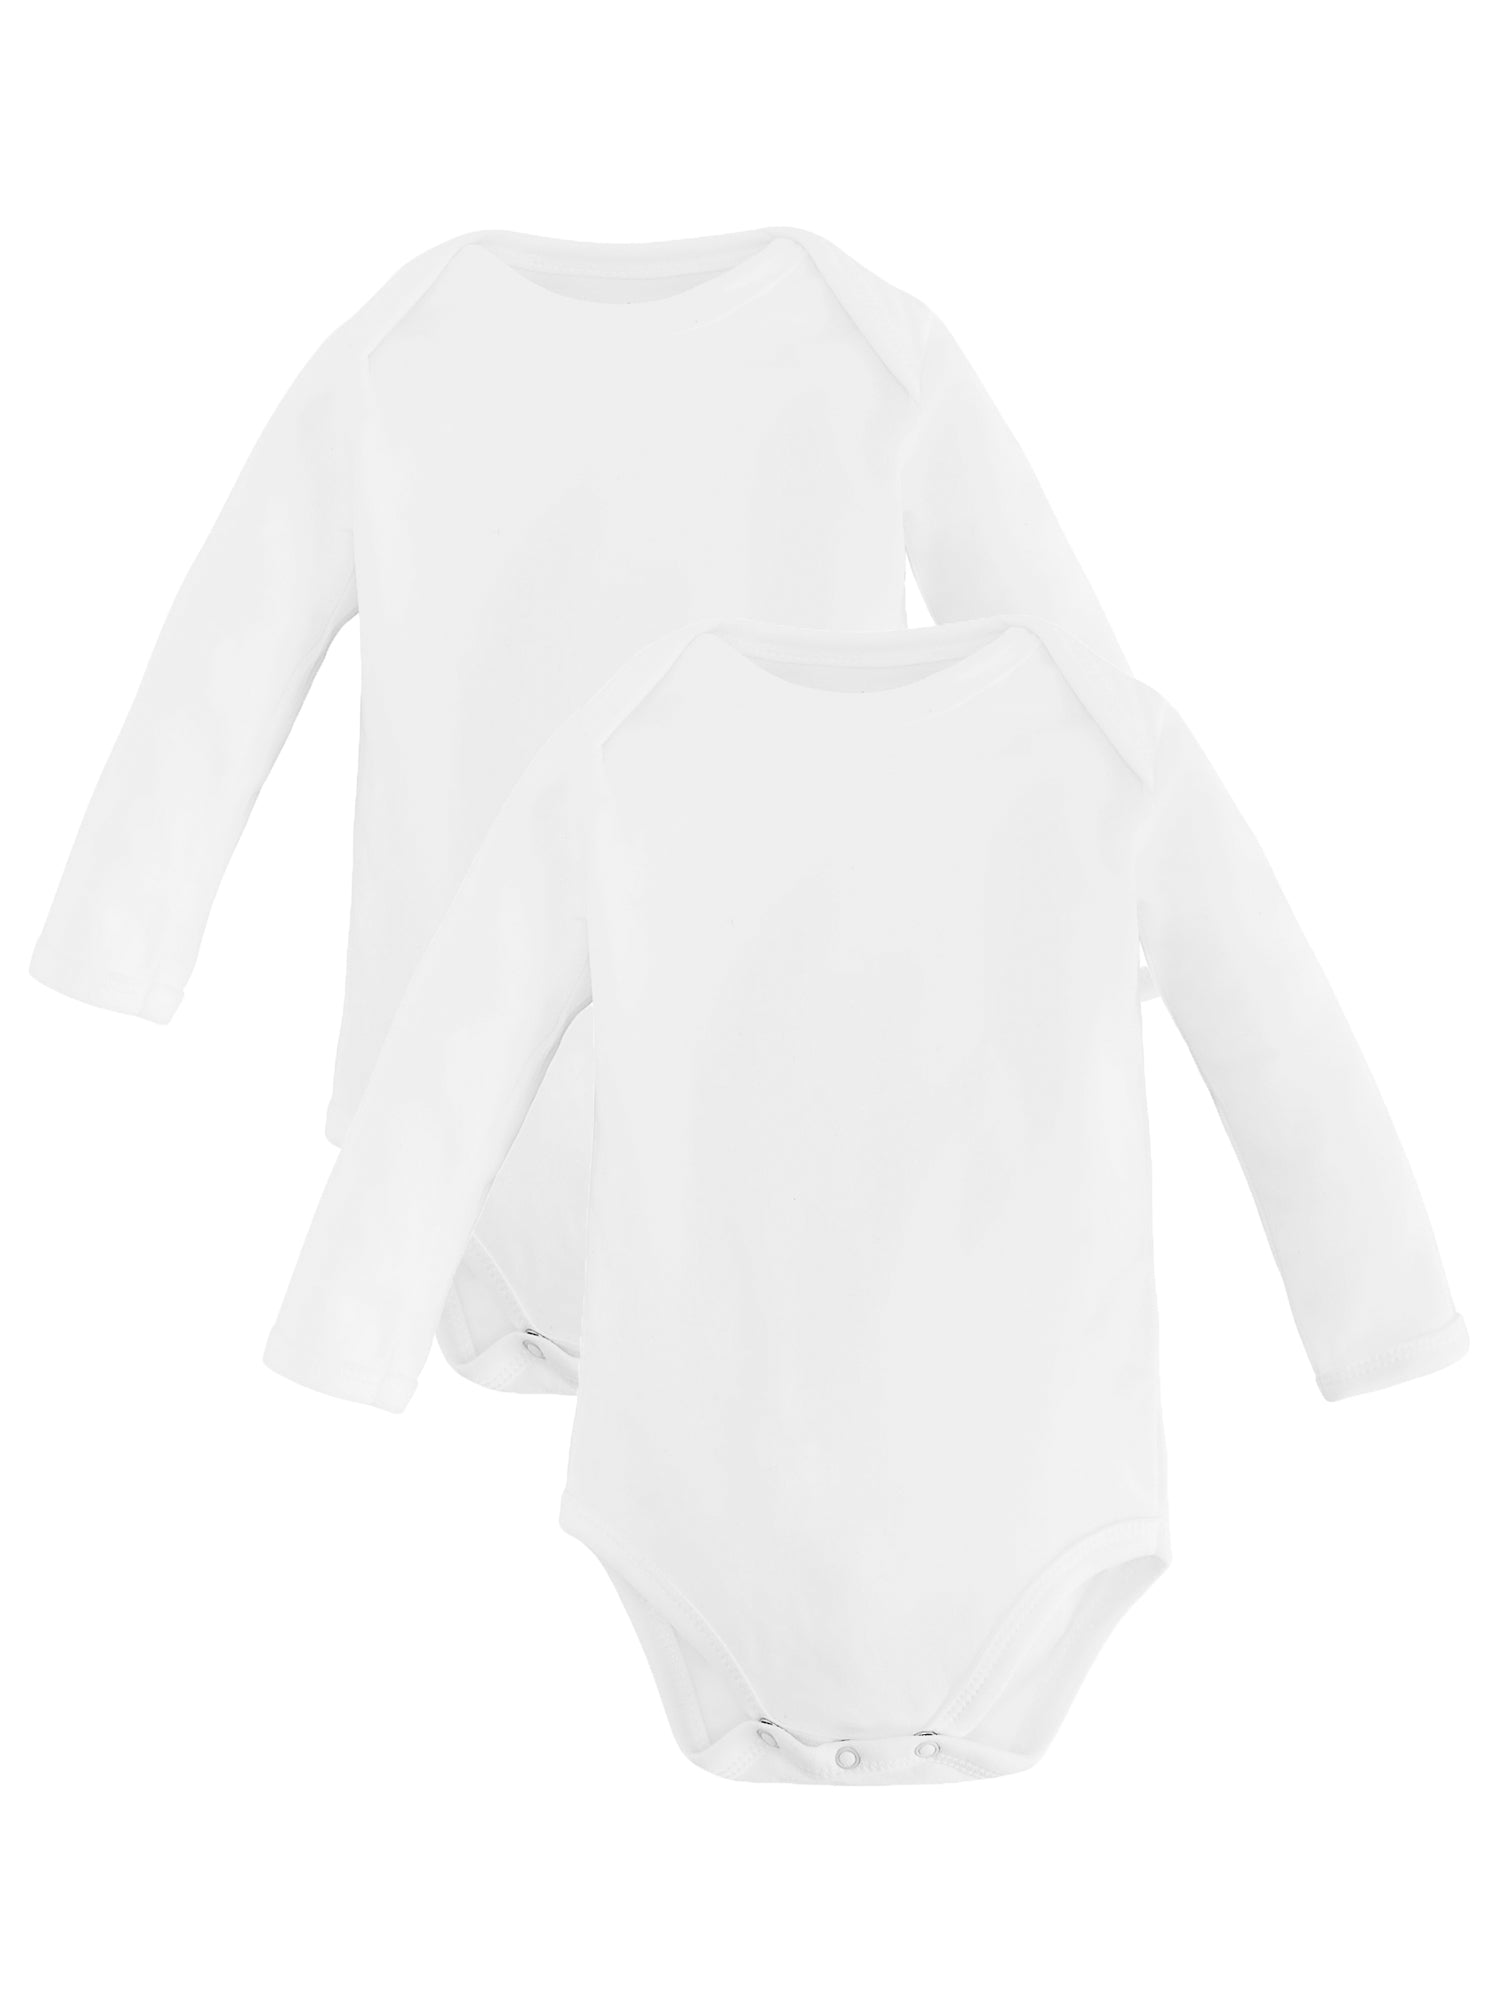 Long Sleeve Lap Shoulder Bodysuit - Organic White Value Pack